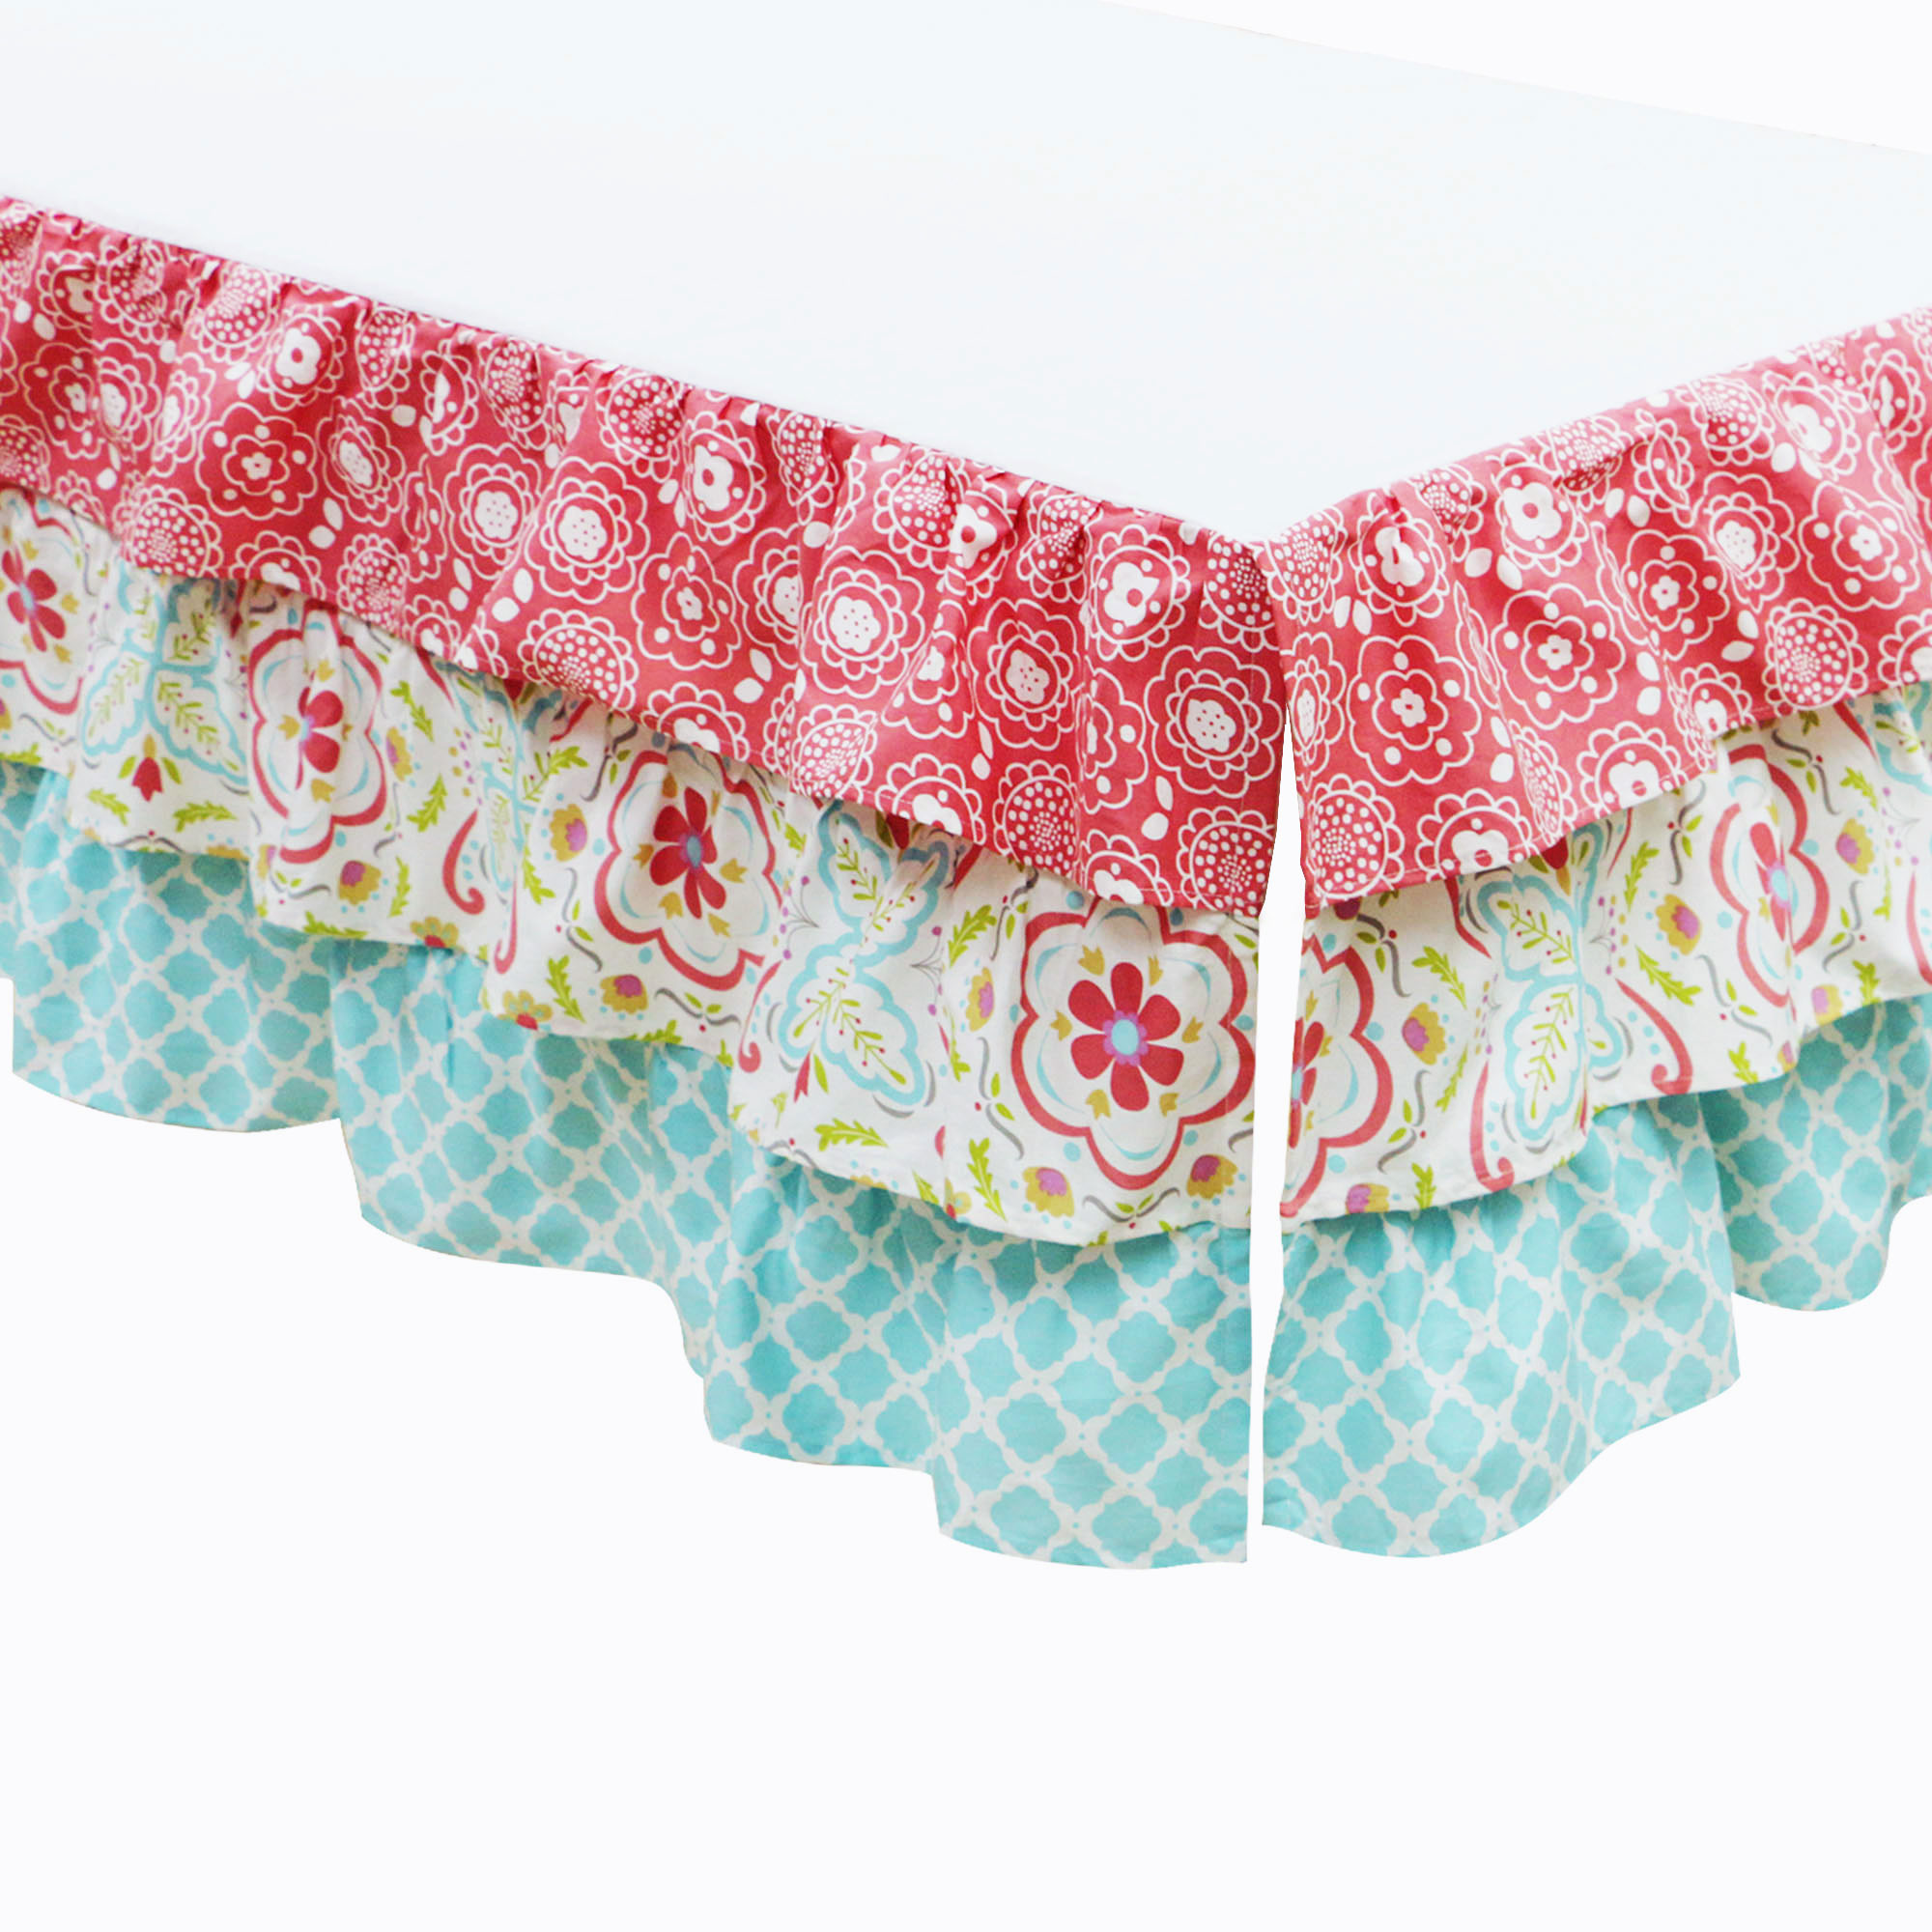 Mila Coral&Blue Floral Patchwork Baby Girl Crib Bedding 4 pc set by